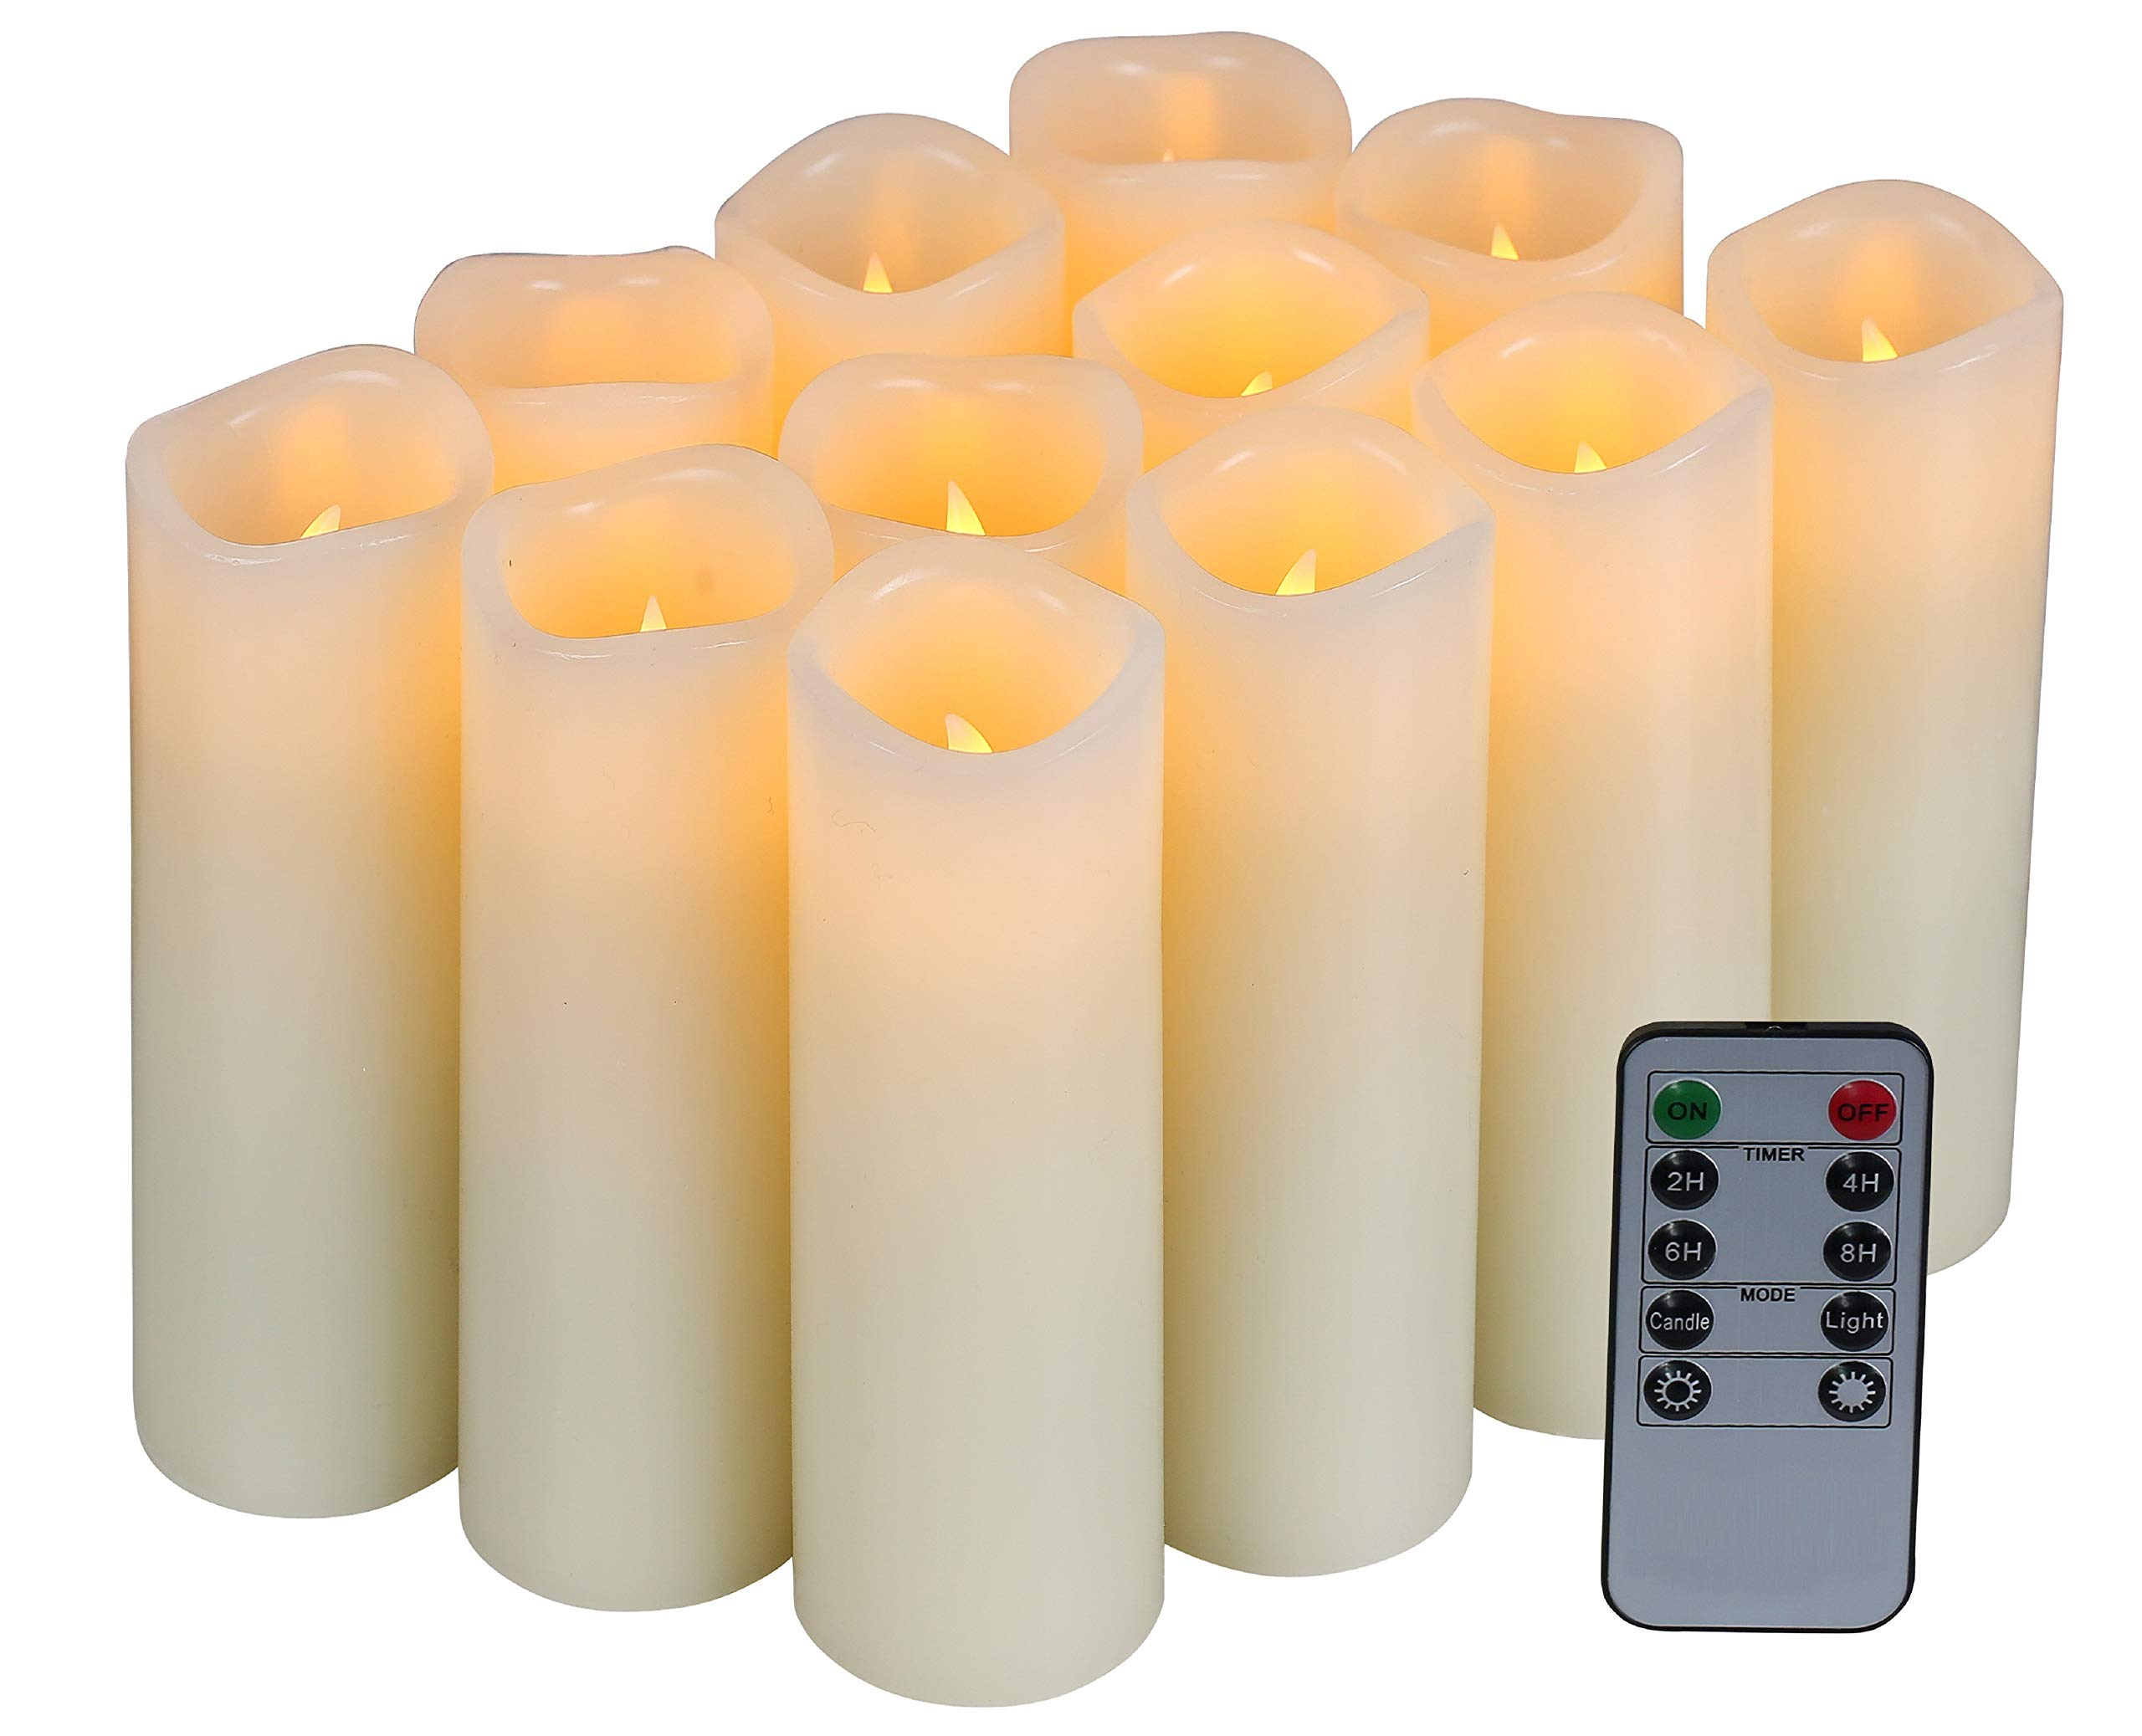 Homelife Set of 12 Flameless Candles Battery Operated LED Pillar Real Wax Flickering Unscented Candles with Remote Control Cycling 24 Hours Timer, Ivory Color